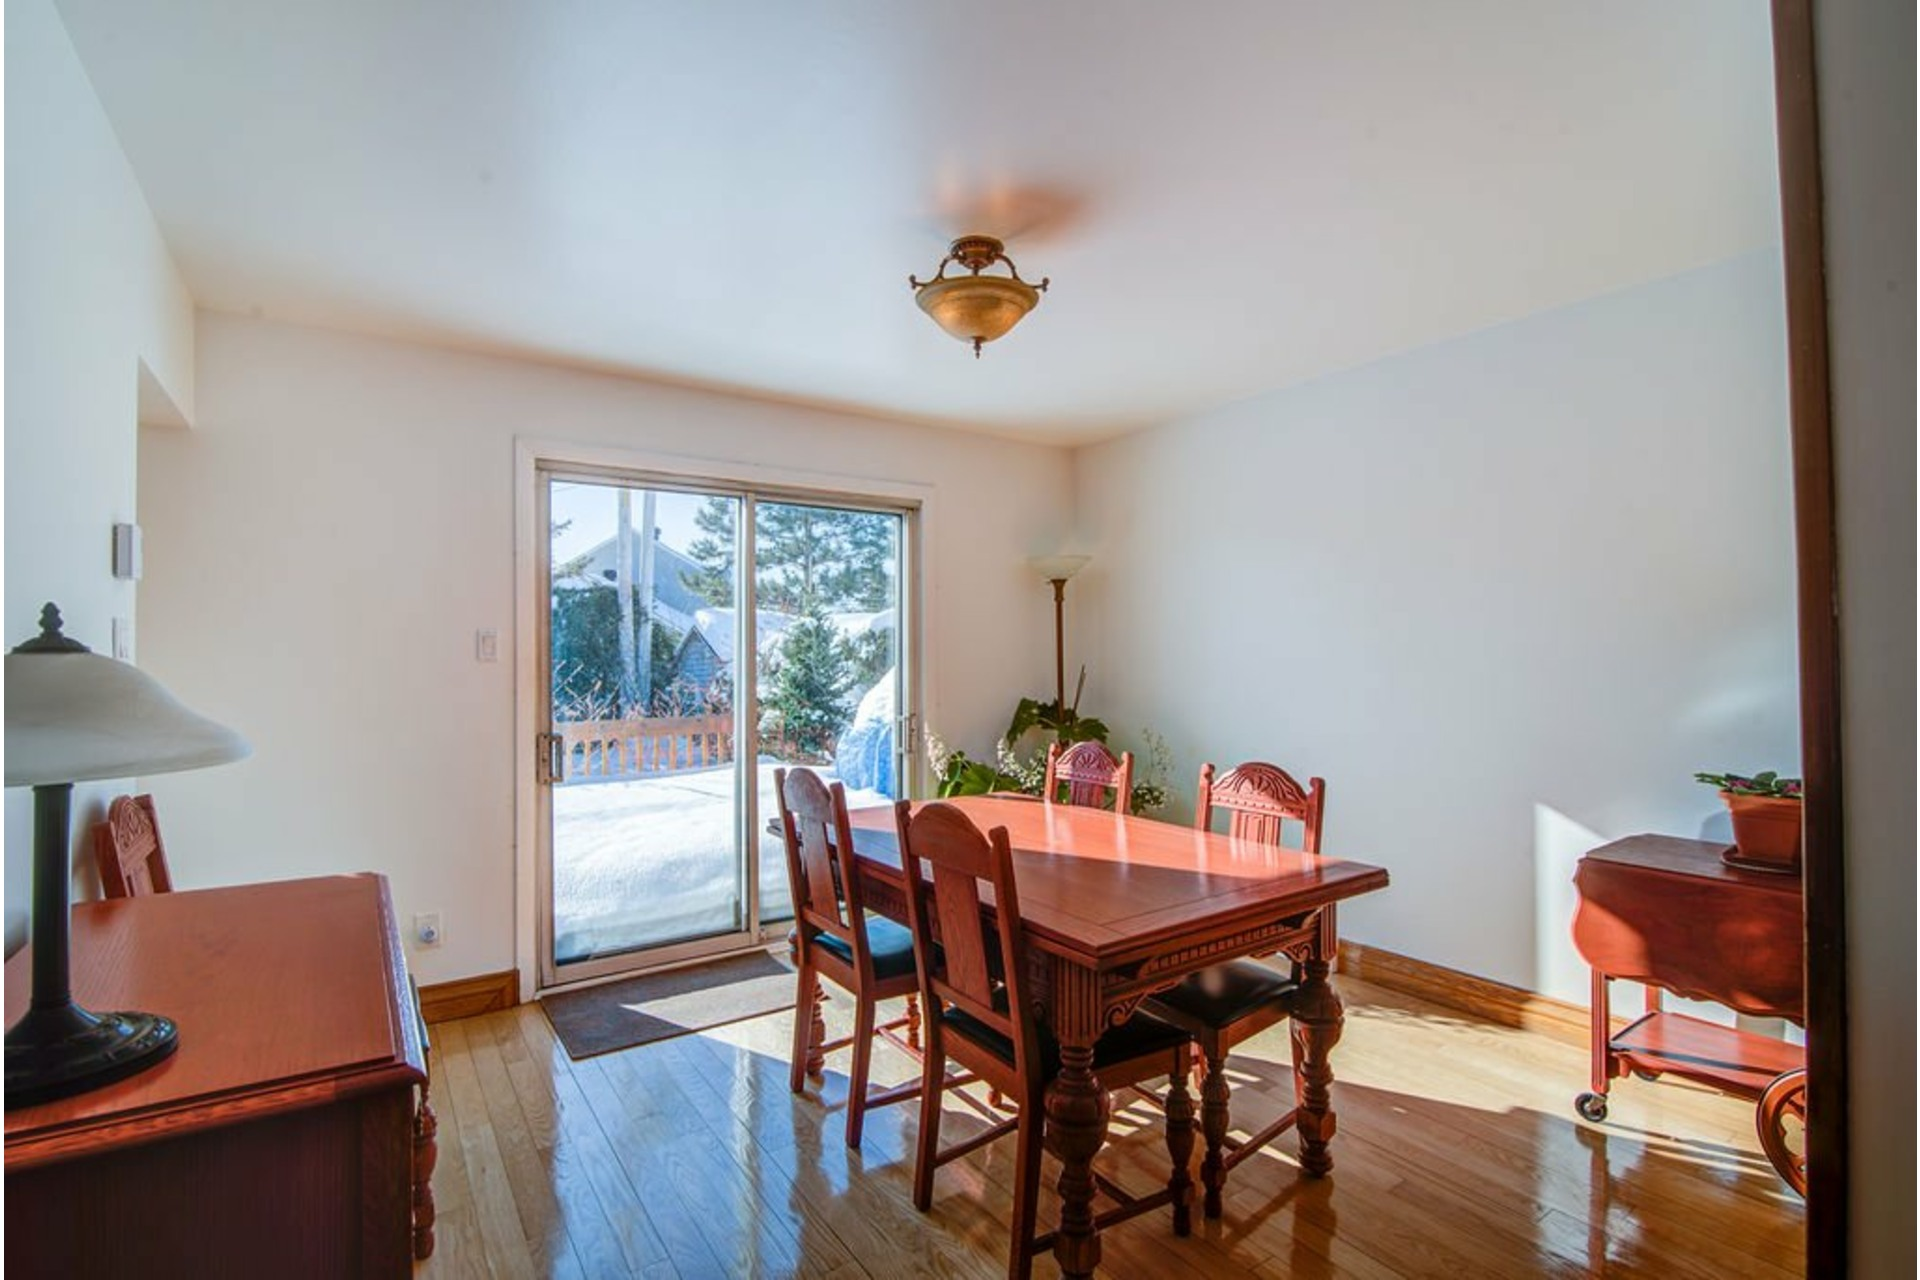 image 11 - House For sale Sainte-Rose Laval  - 17 rooms